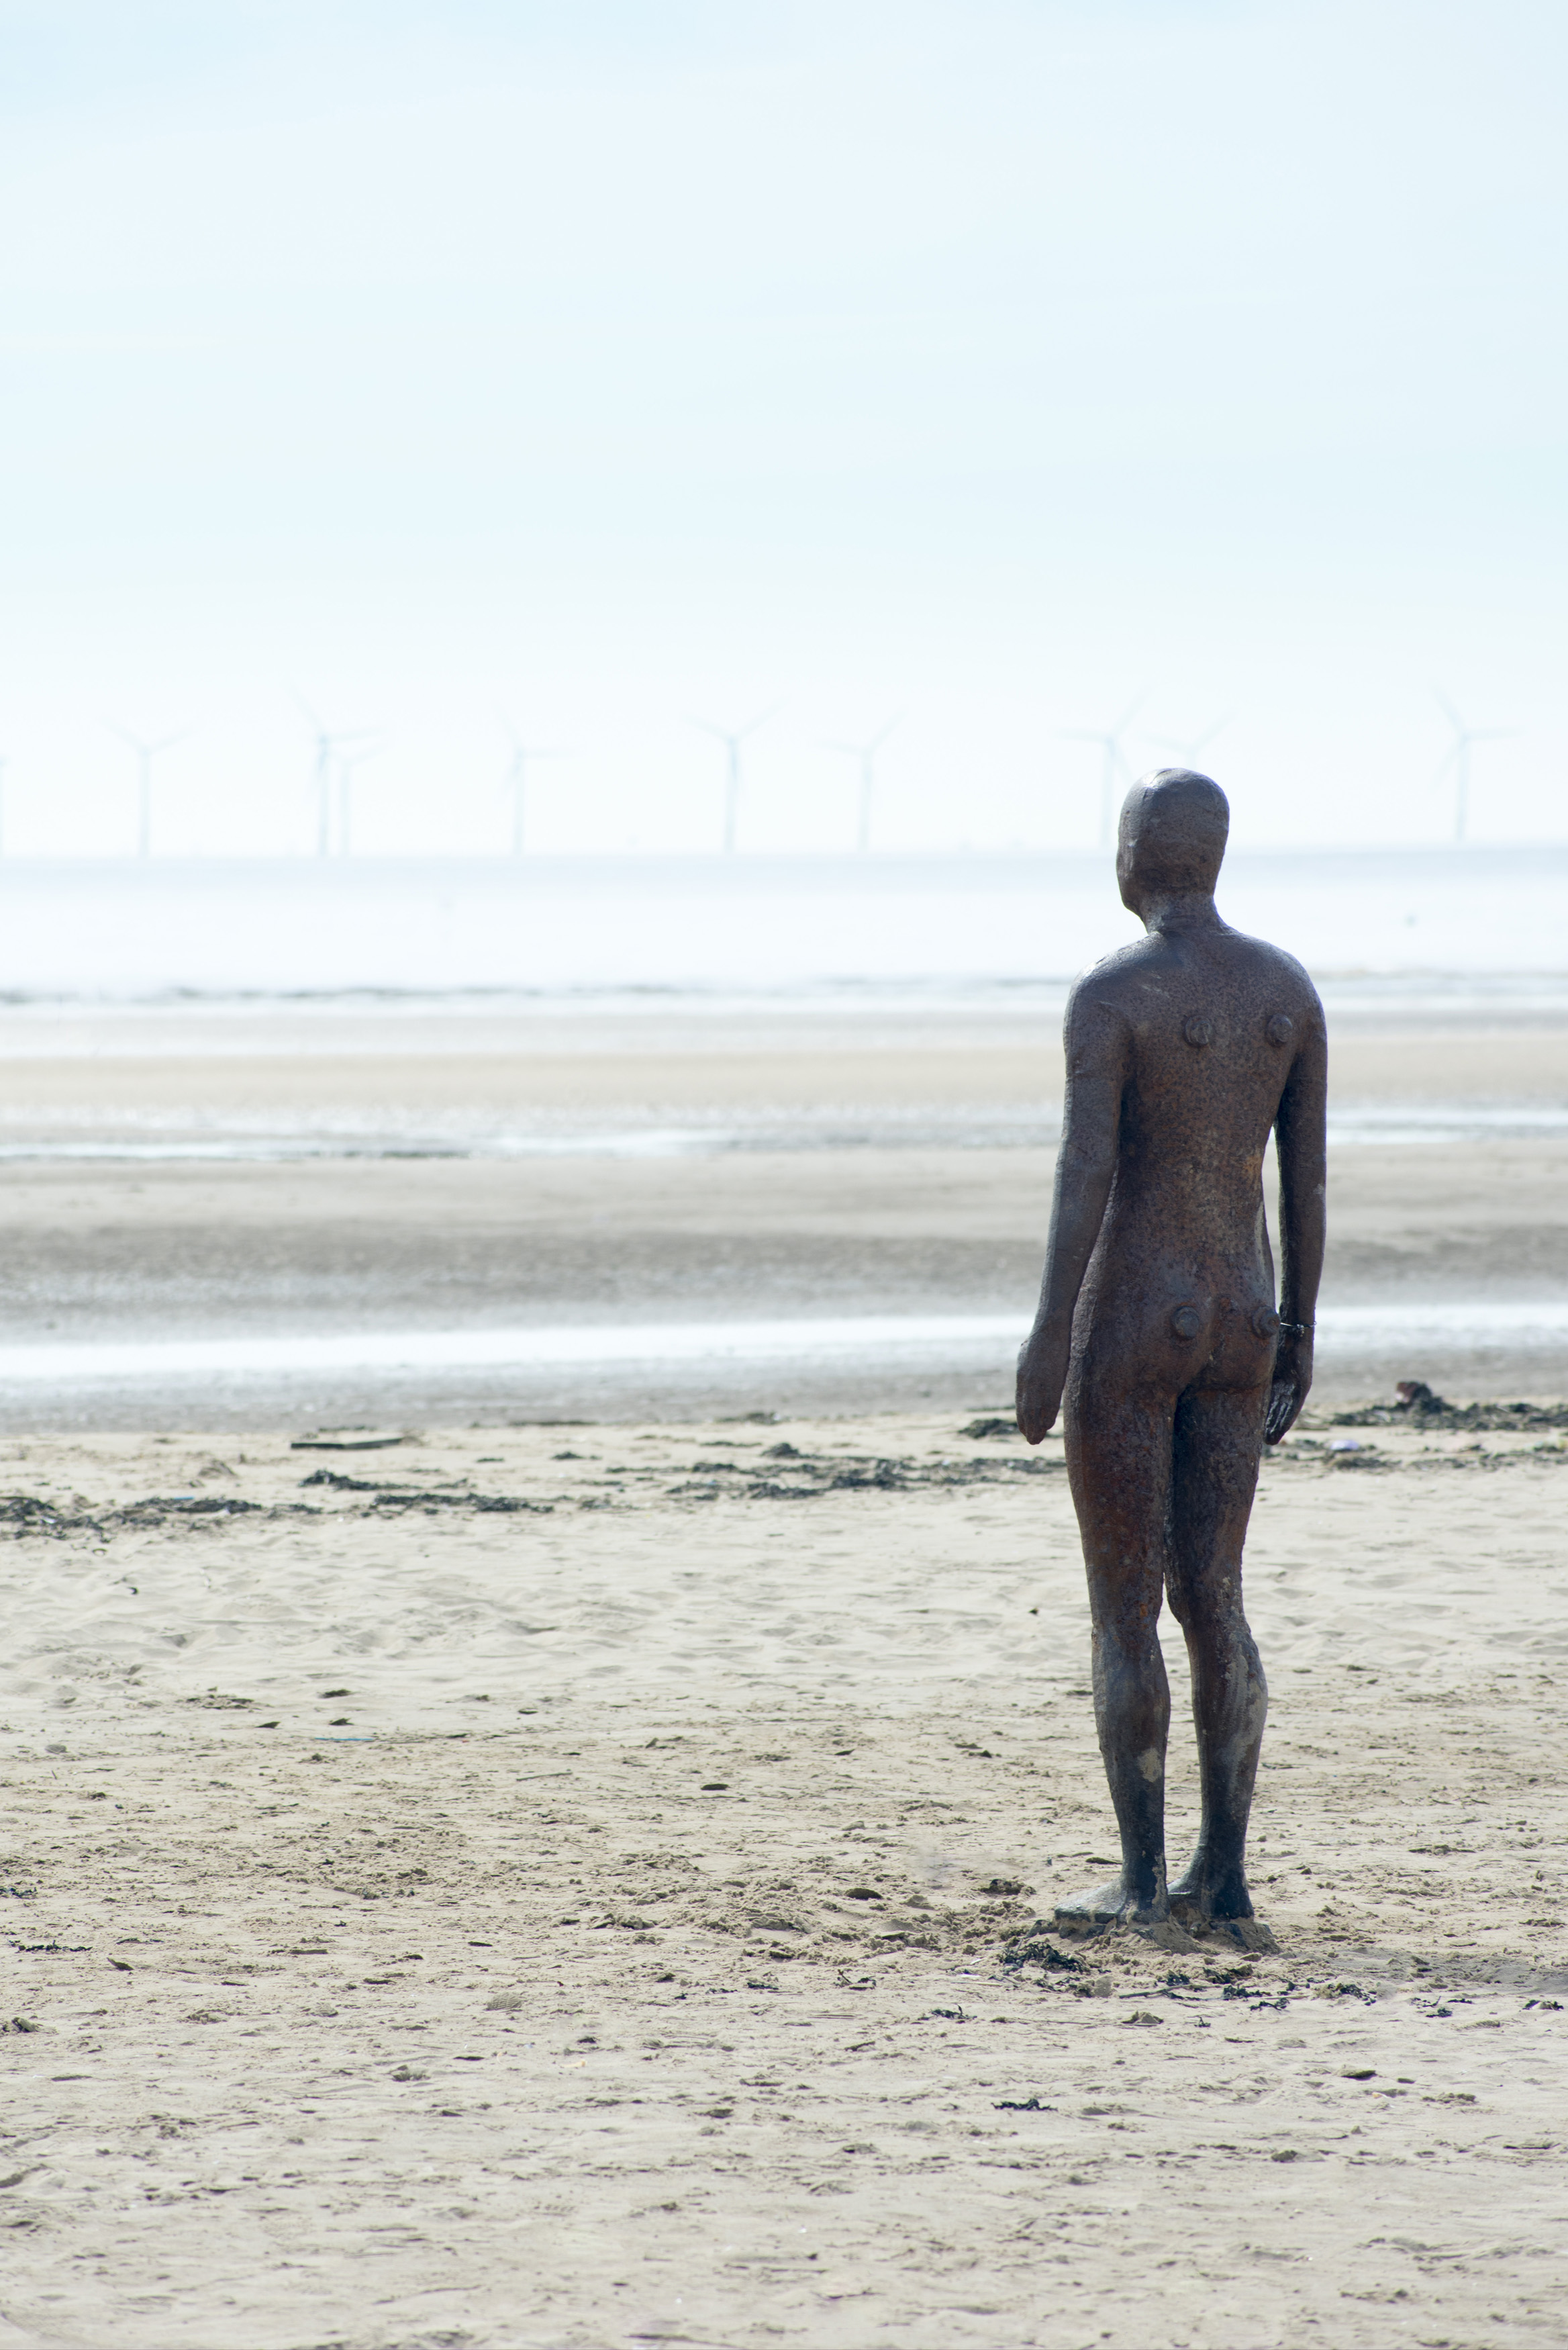 Another Place statue facing empty beach in Crosby, United Kingdom, with windmill power turbines in the far distance